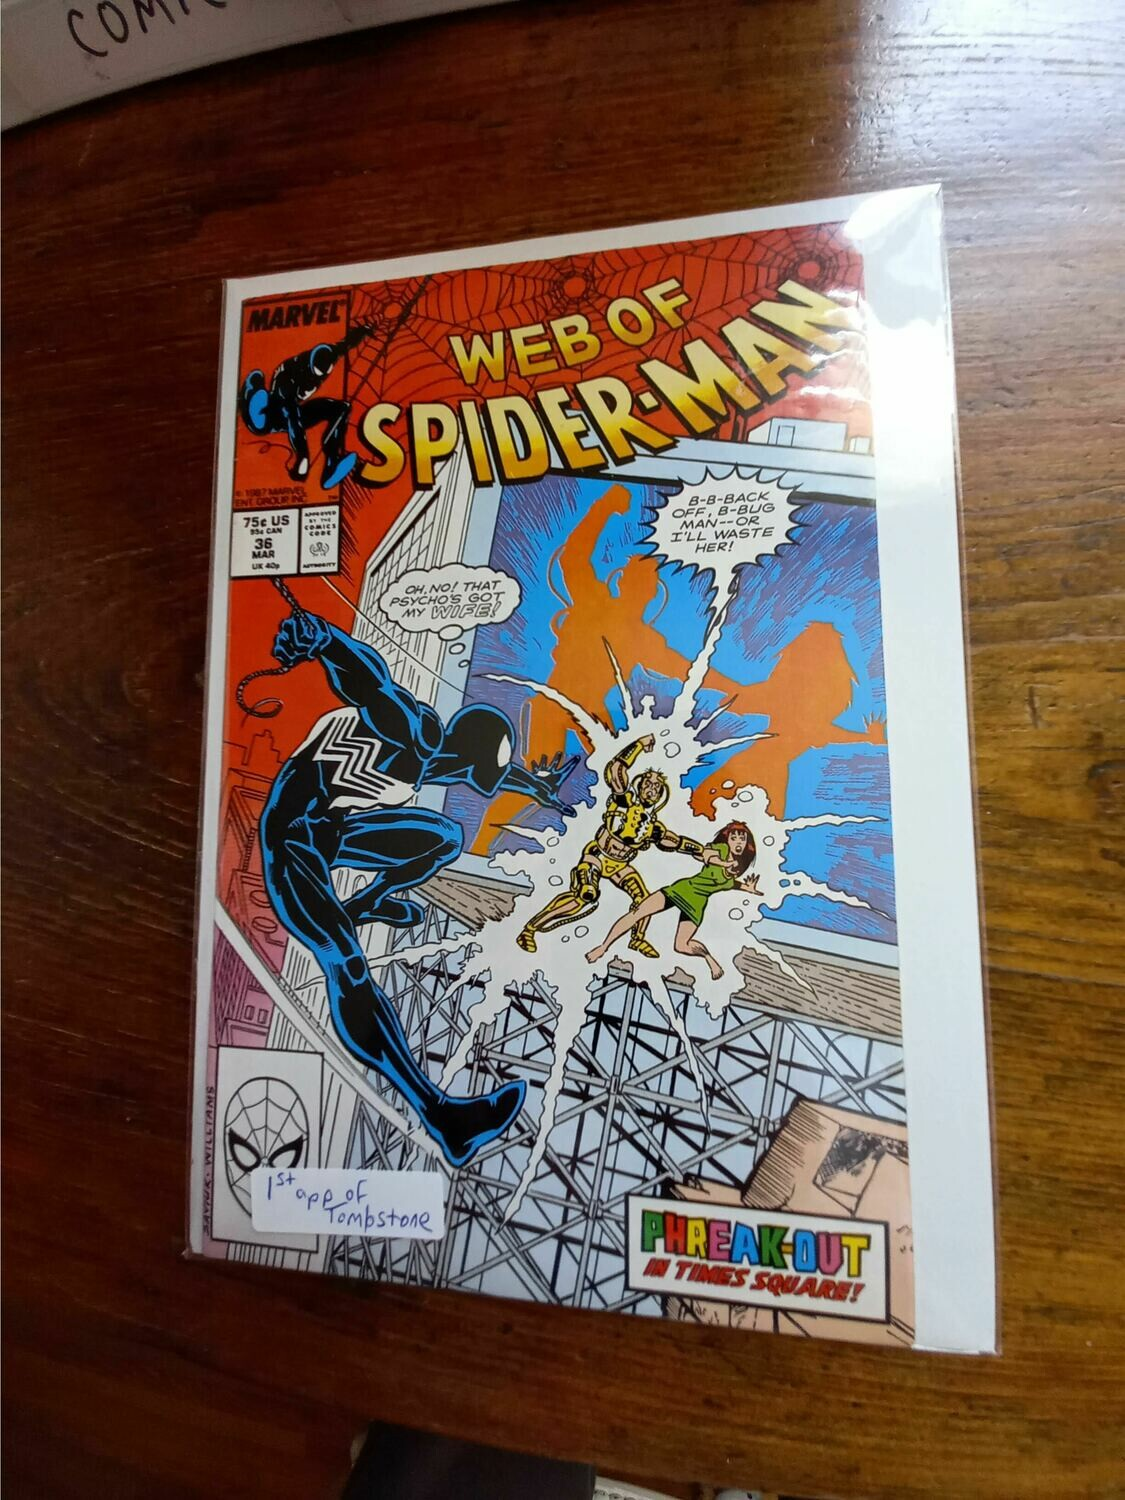 Web of Spiderman # 36  - Comic - B73